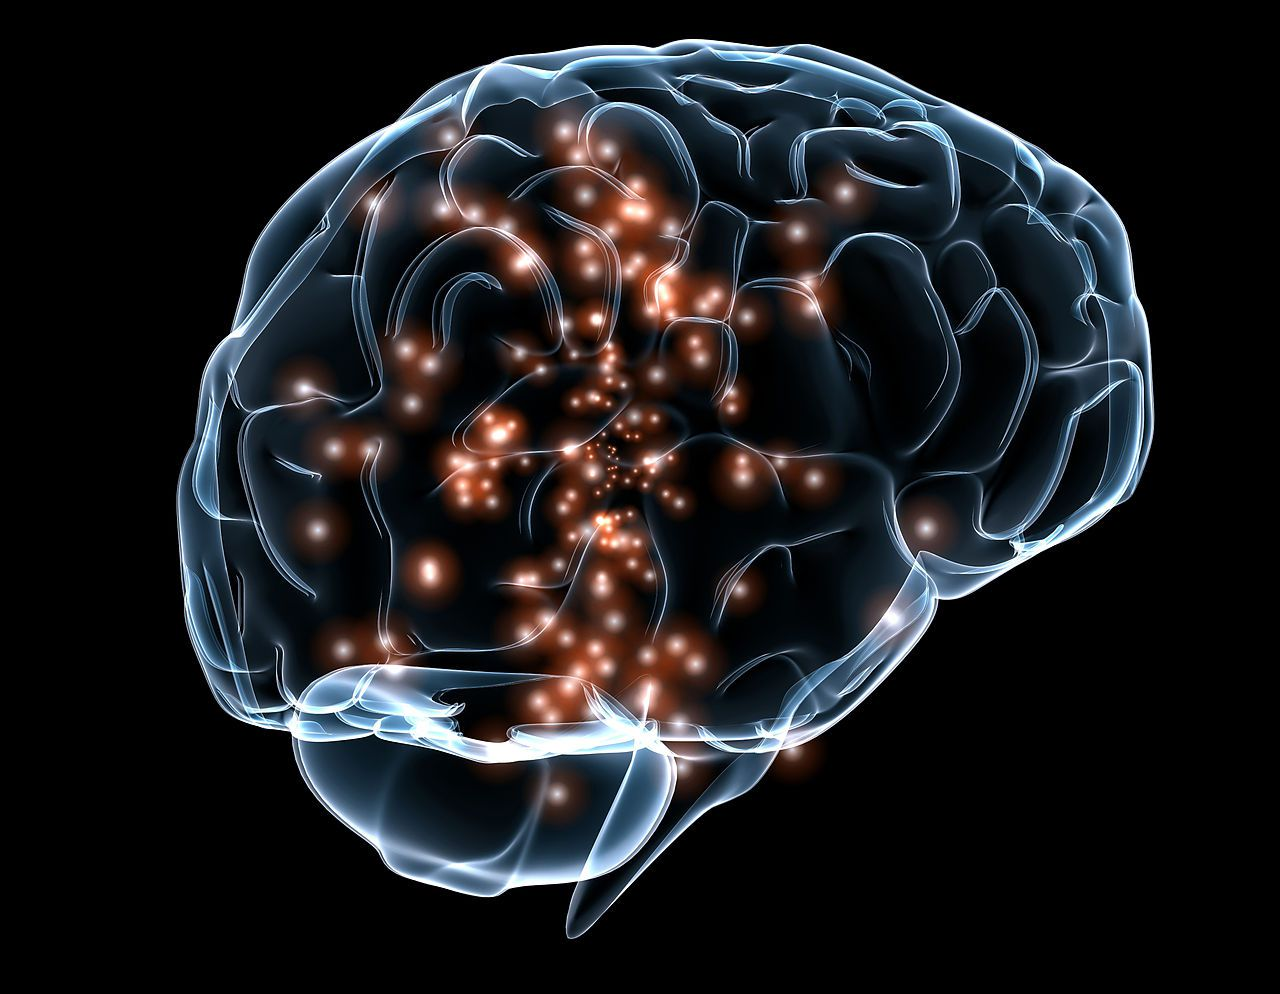 Brainwaves Identification The Key For Future Biometric Systems-1